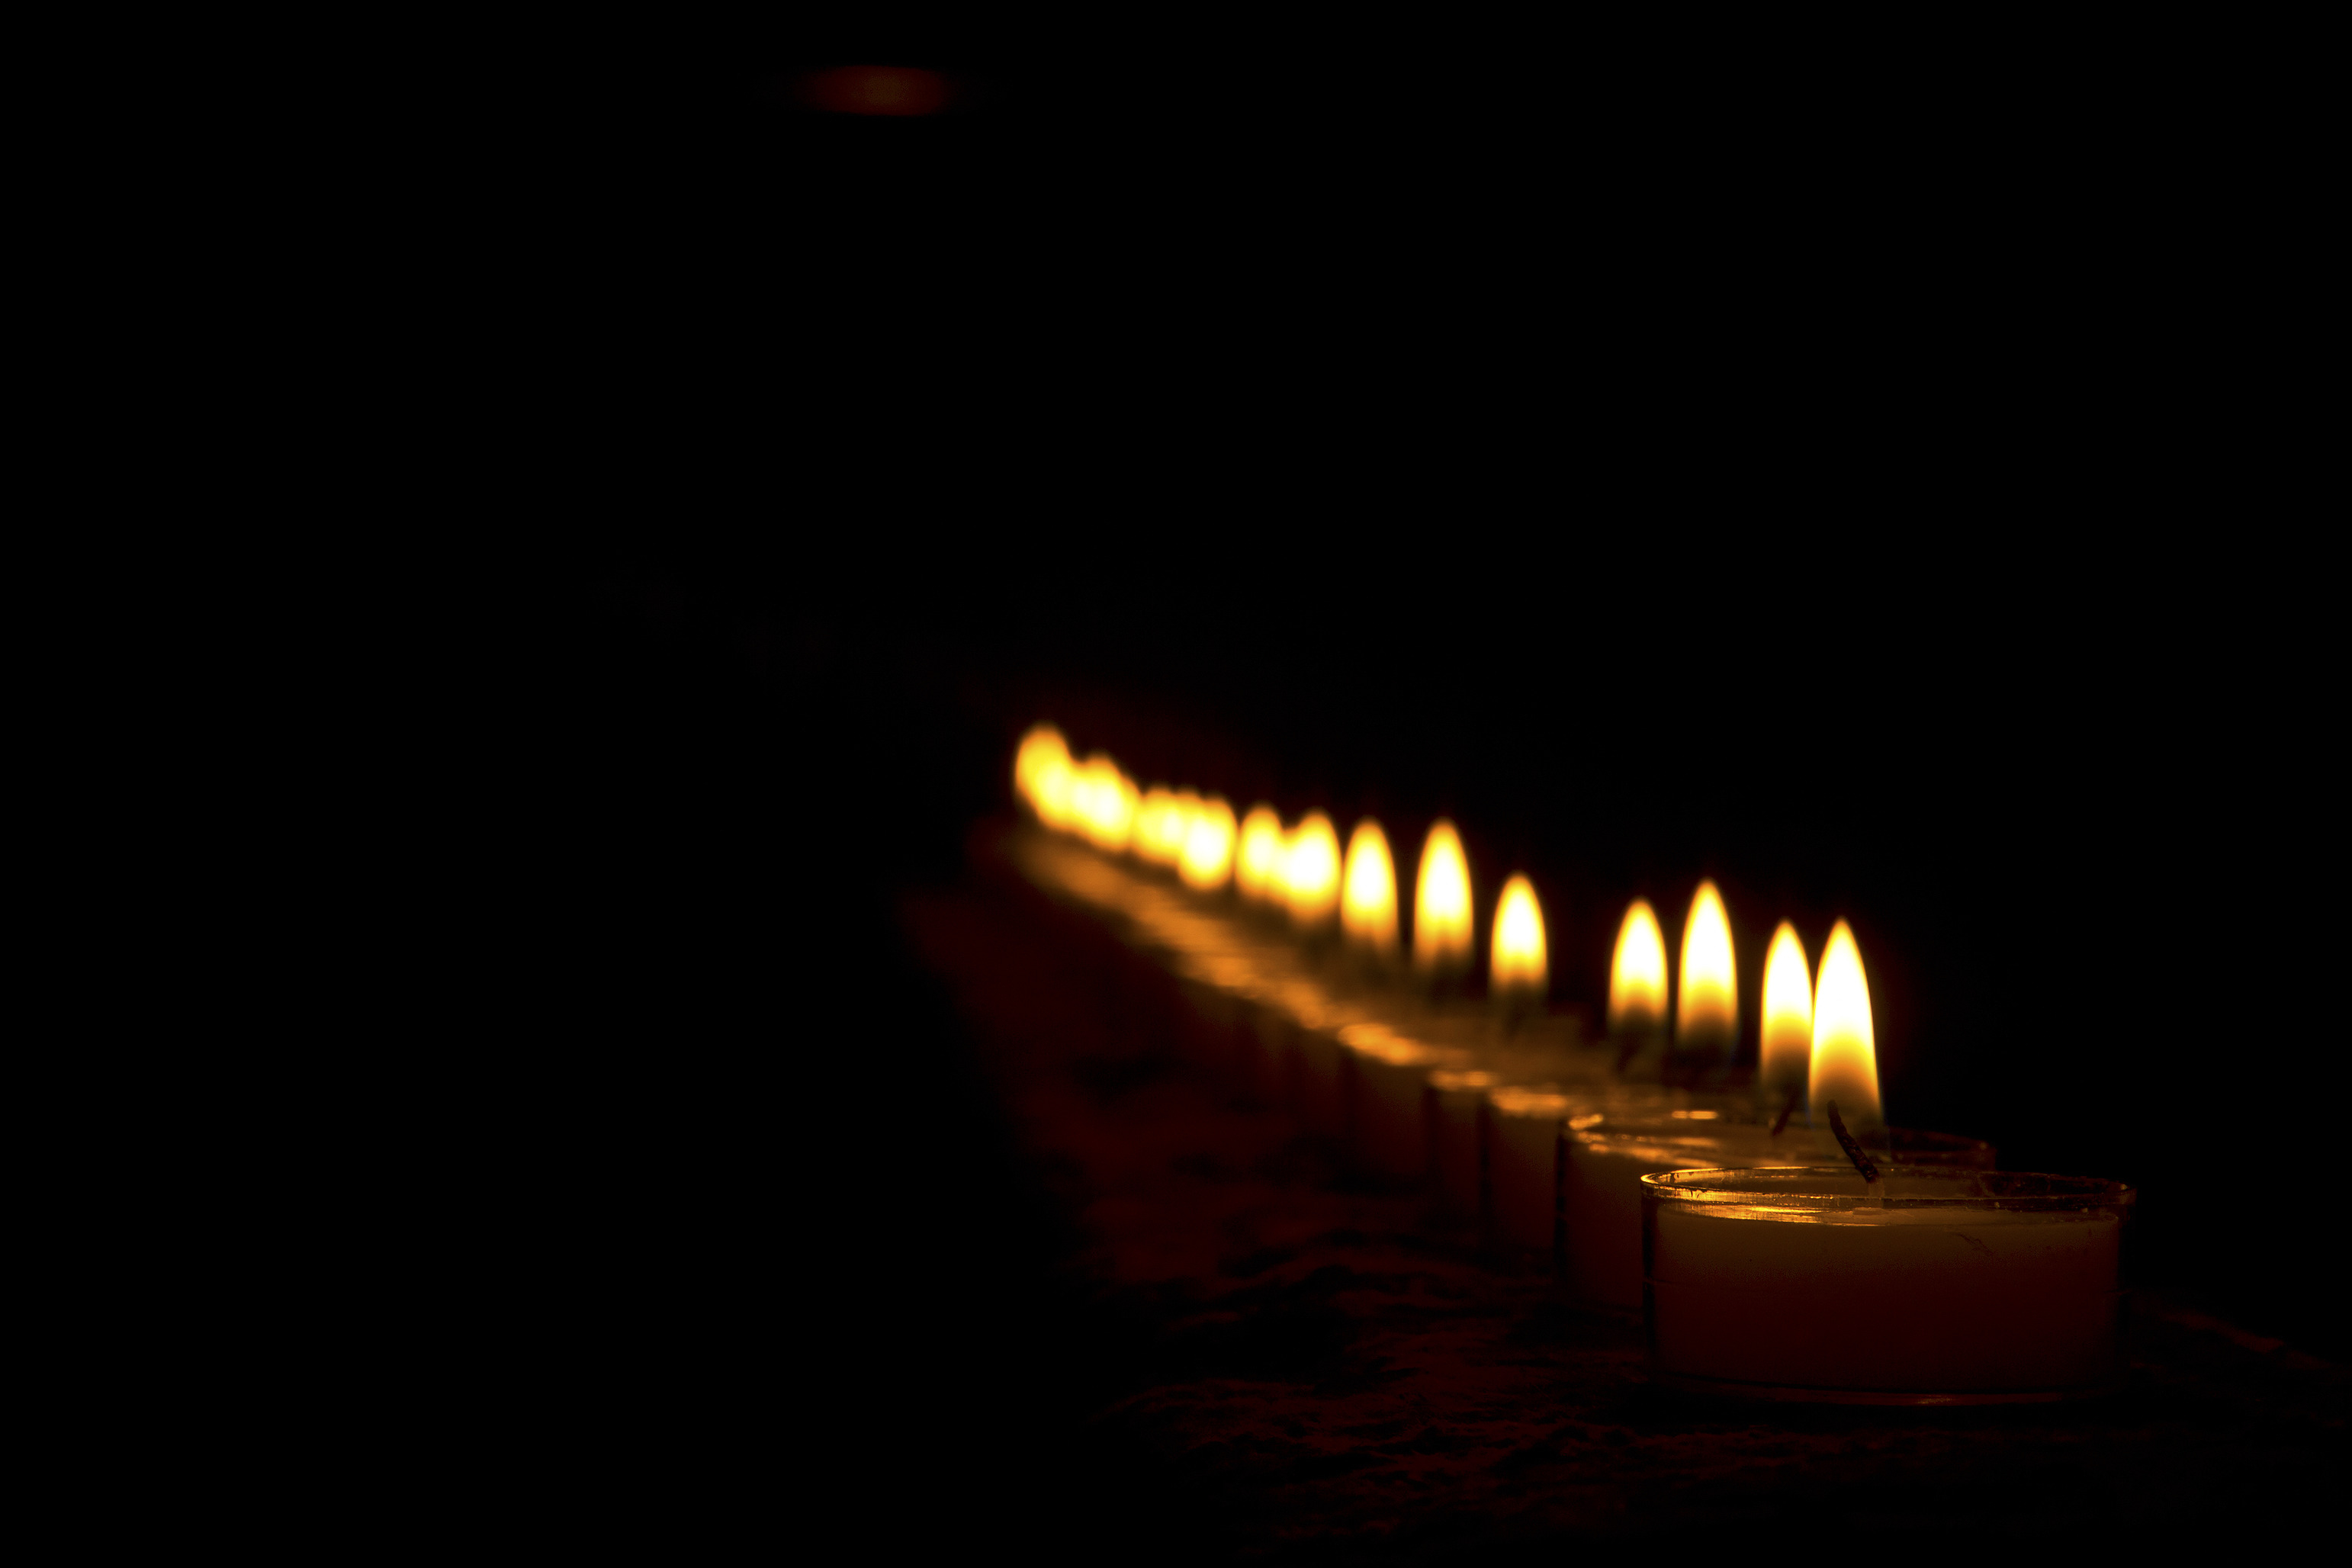 candles_MkuhOyKu